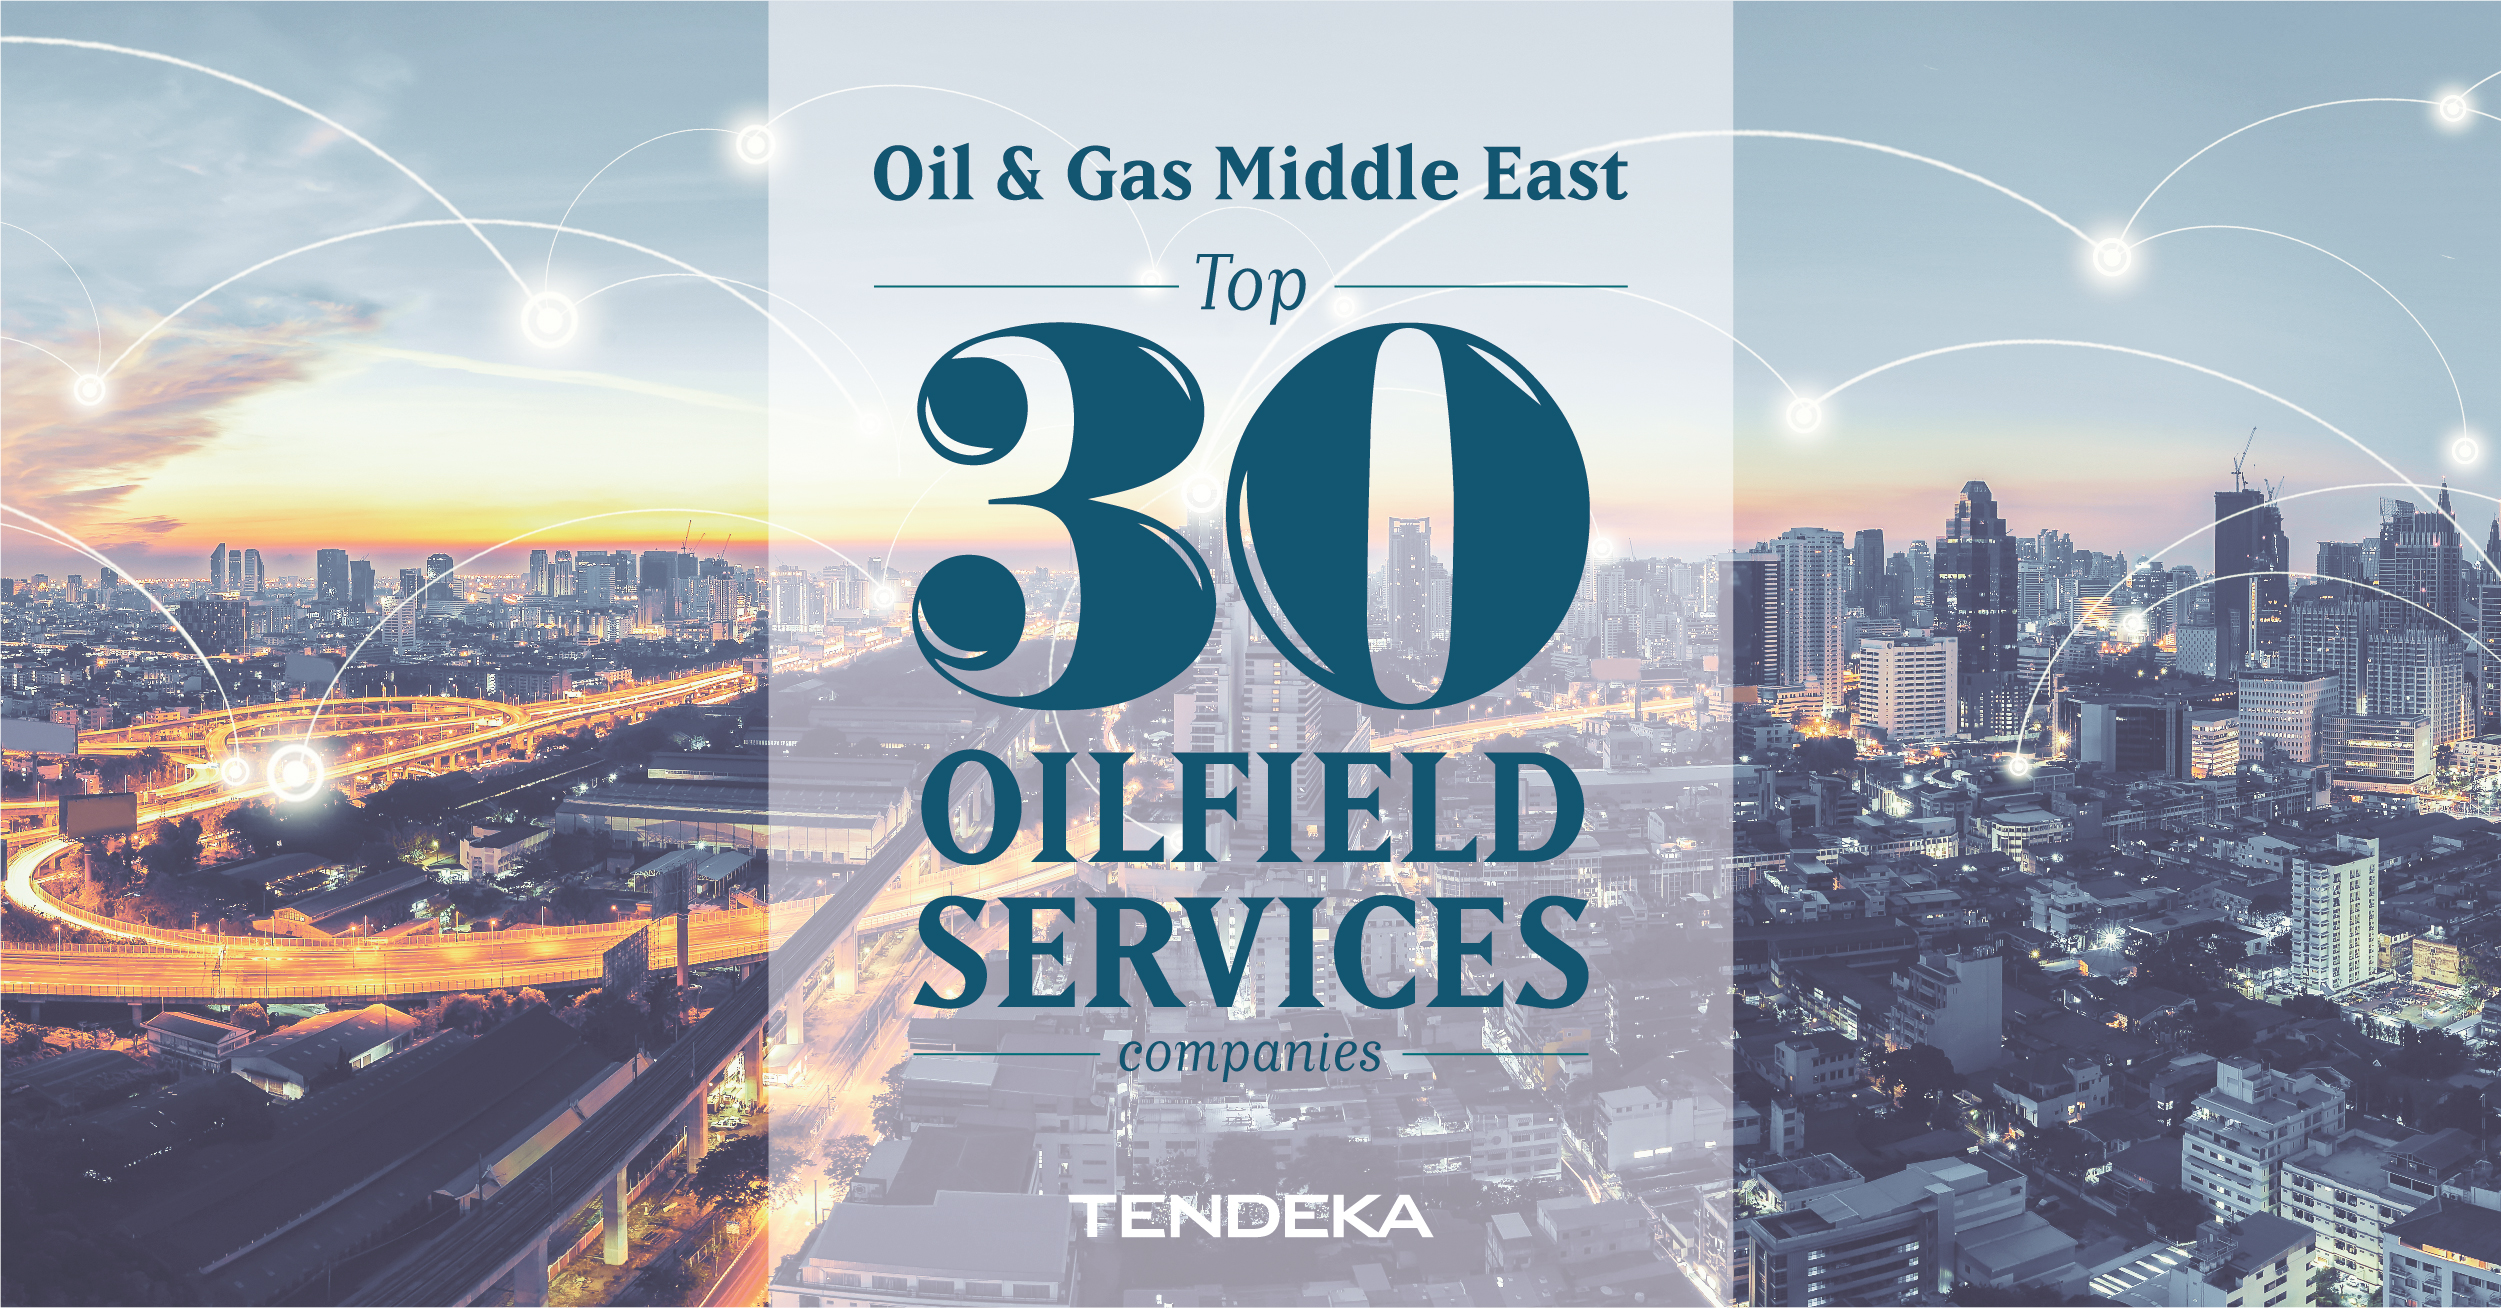 Top 30 oilfield services companies